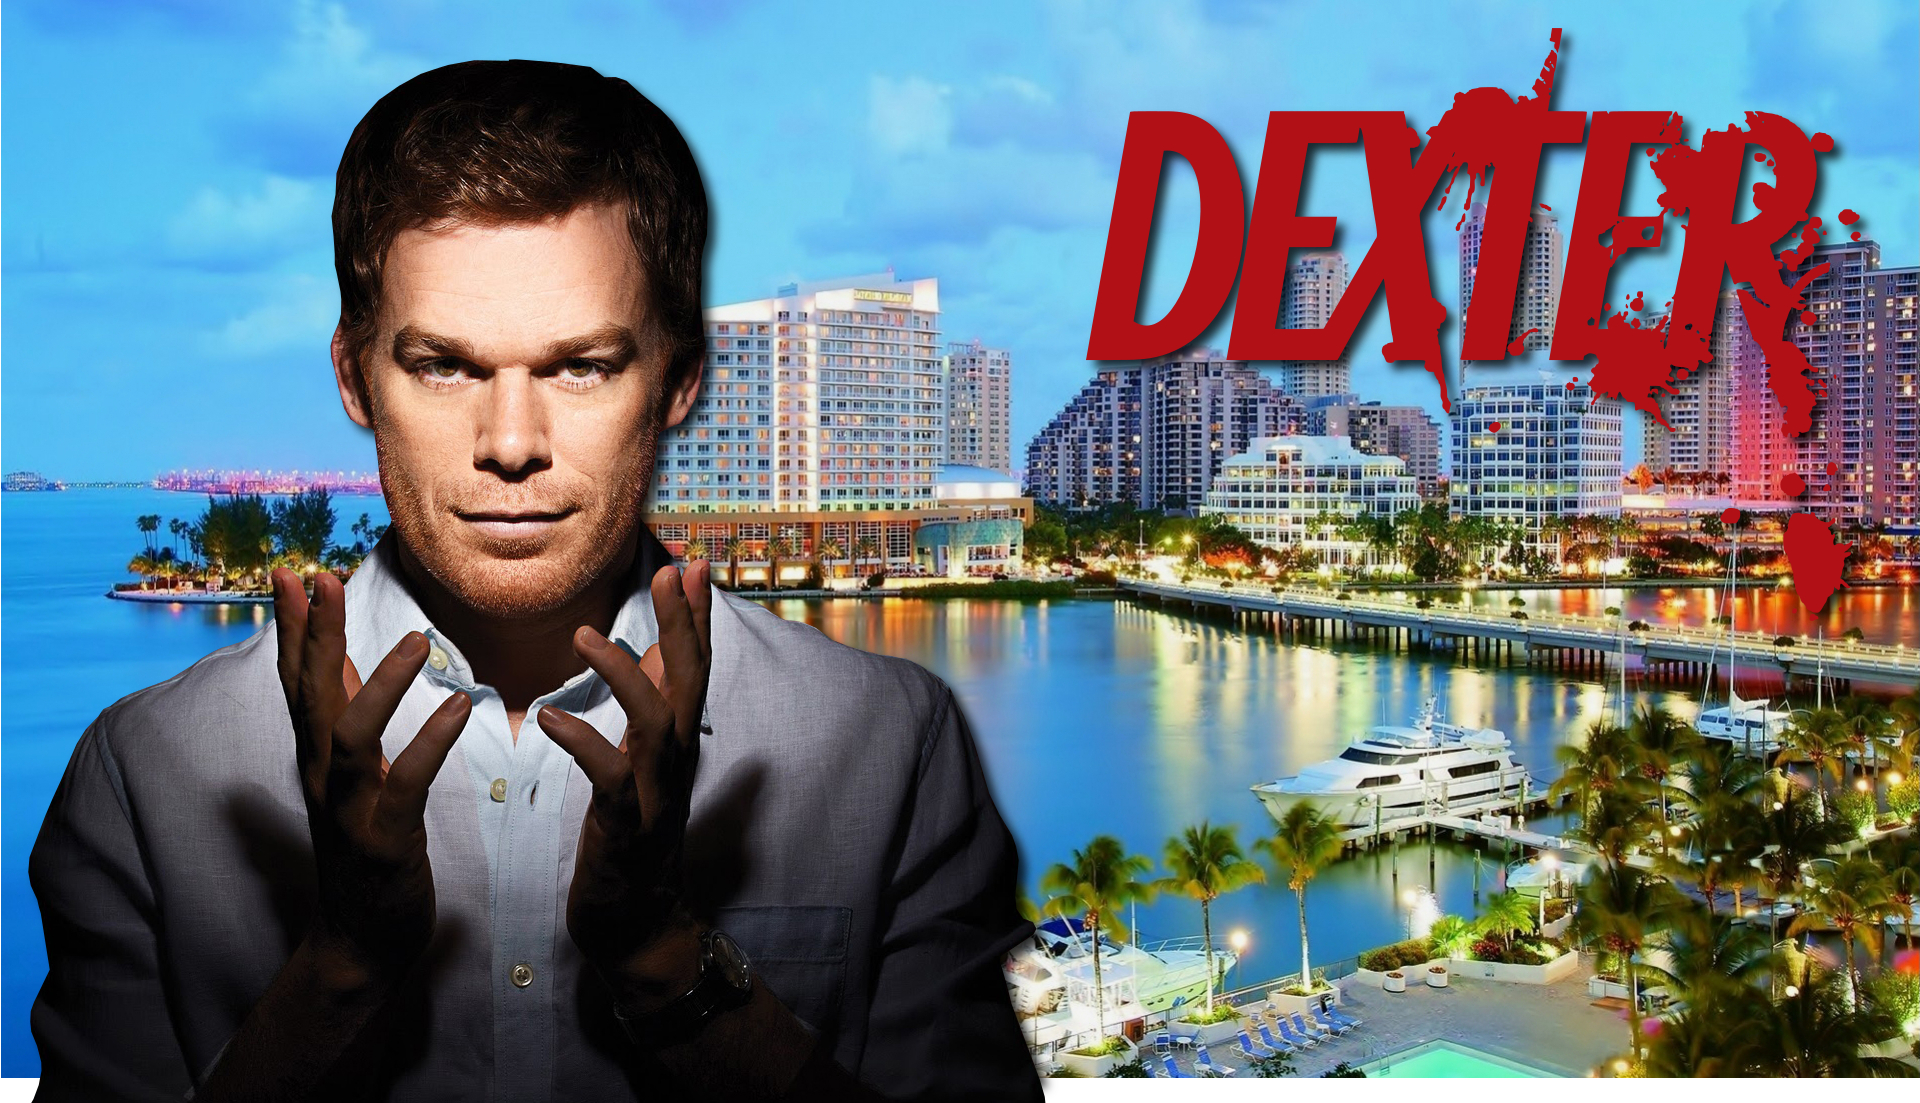 analysis of the tv show dexter A page for describing characters: dexter antagonists main character index | dexter morgan | main characters after the fact, he shows sadistic amusement over her death and smugly admits he found killing her to be a highly refreshing experience.